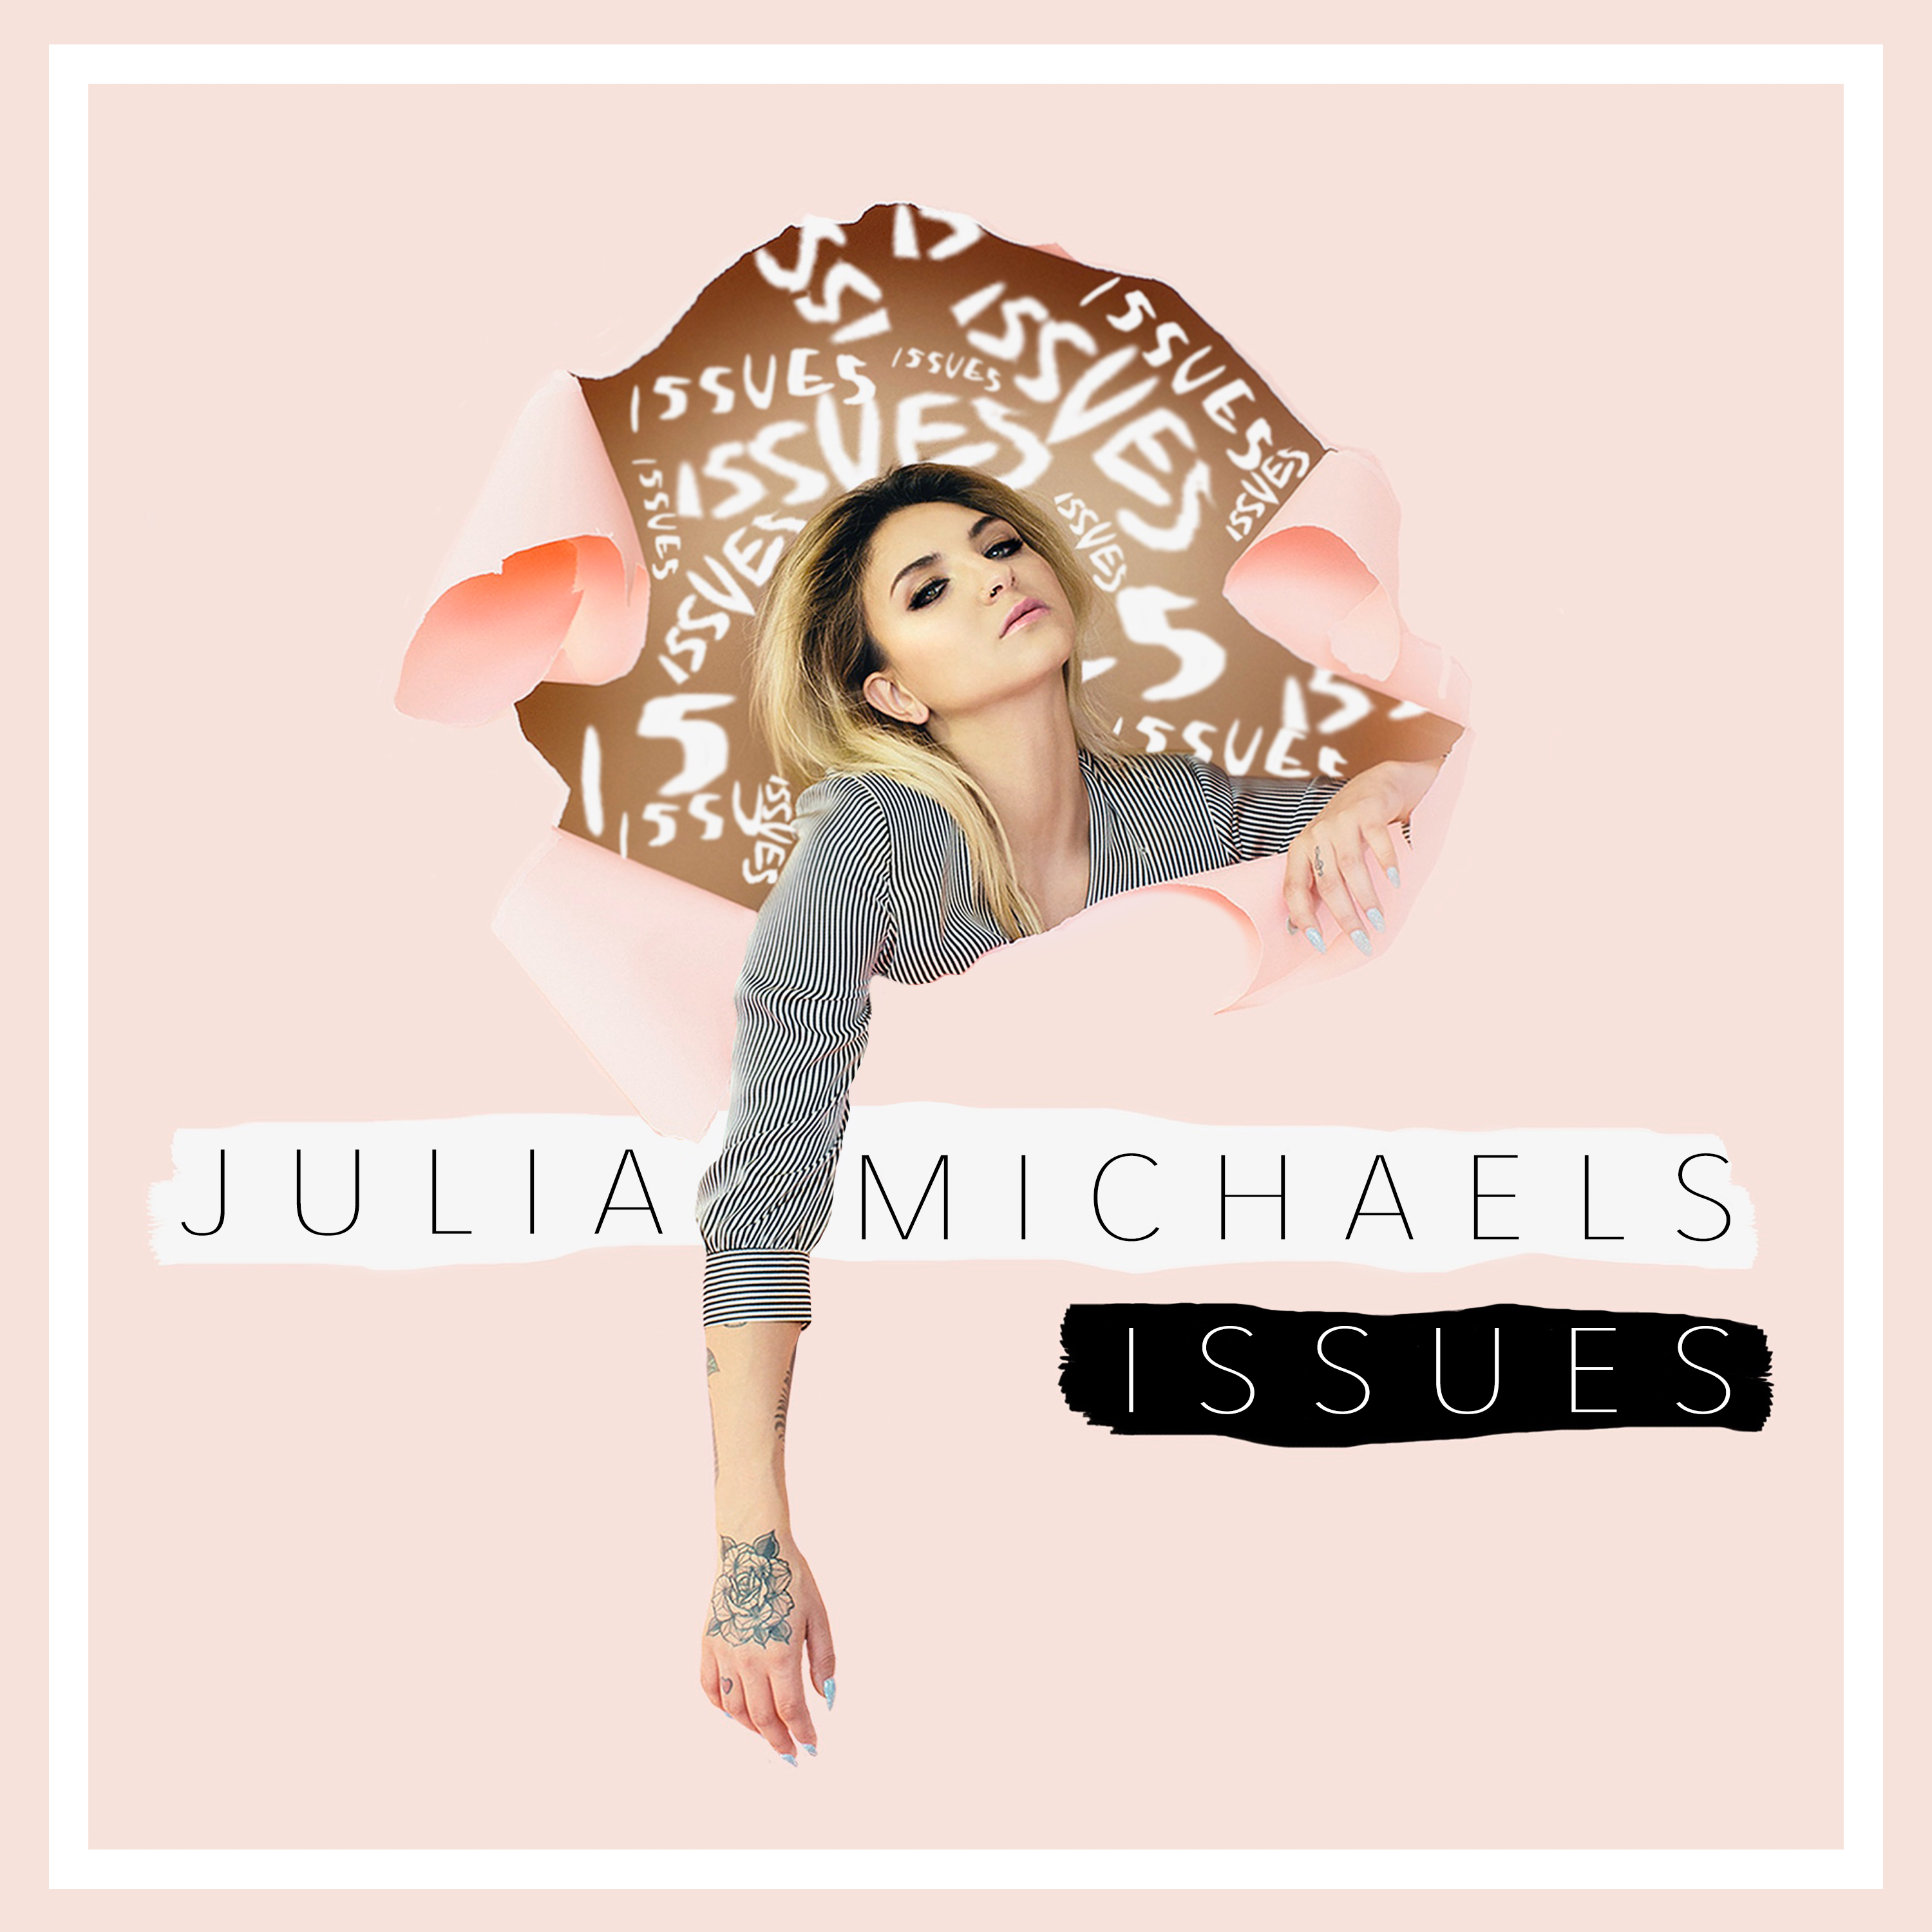 JuliaMichaels_Issues